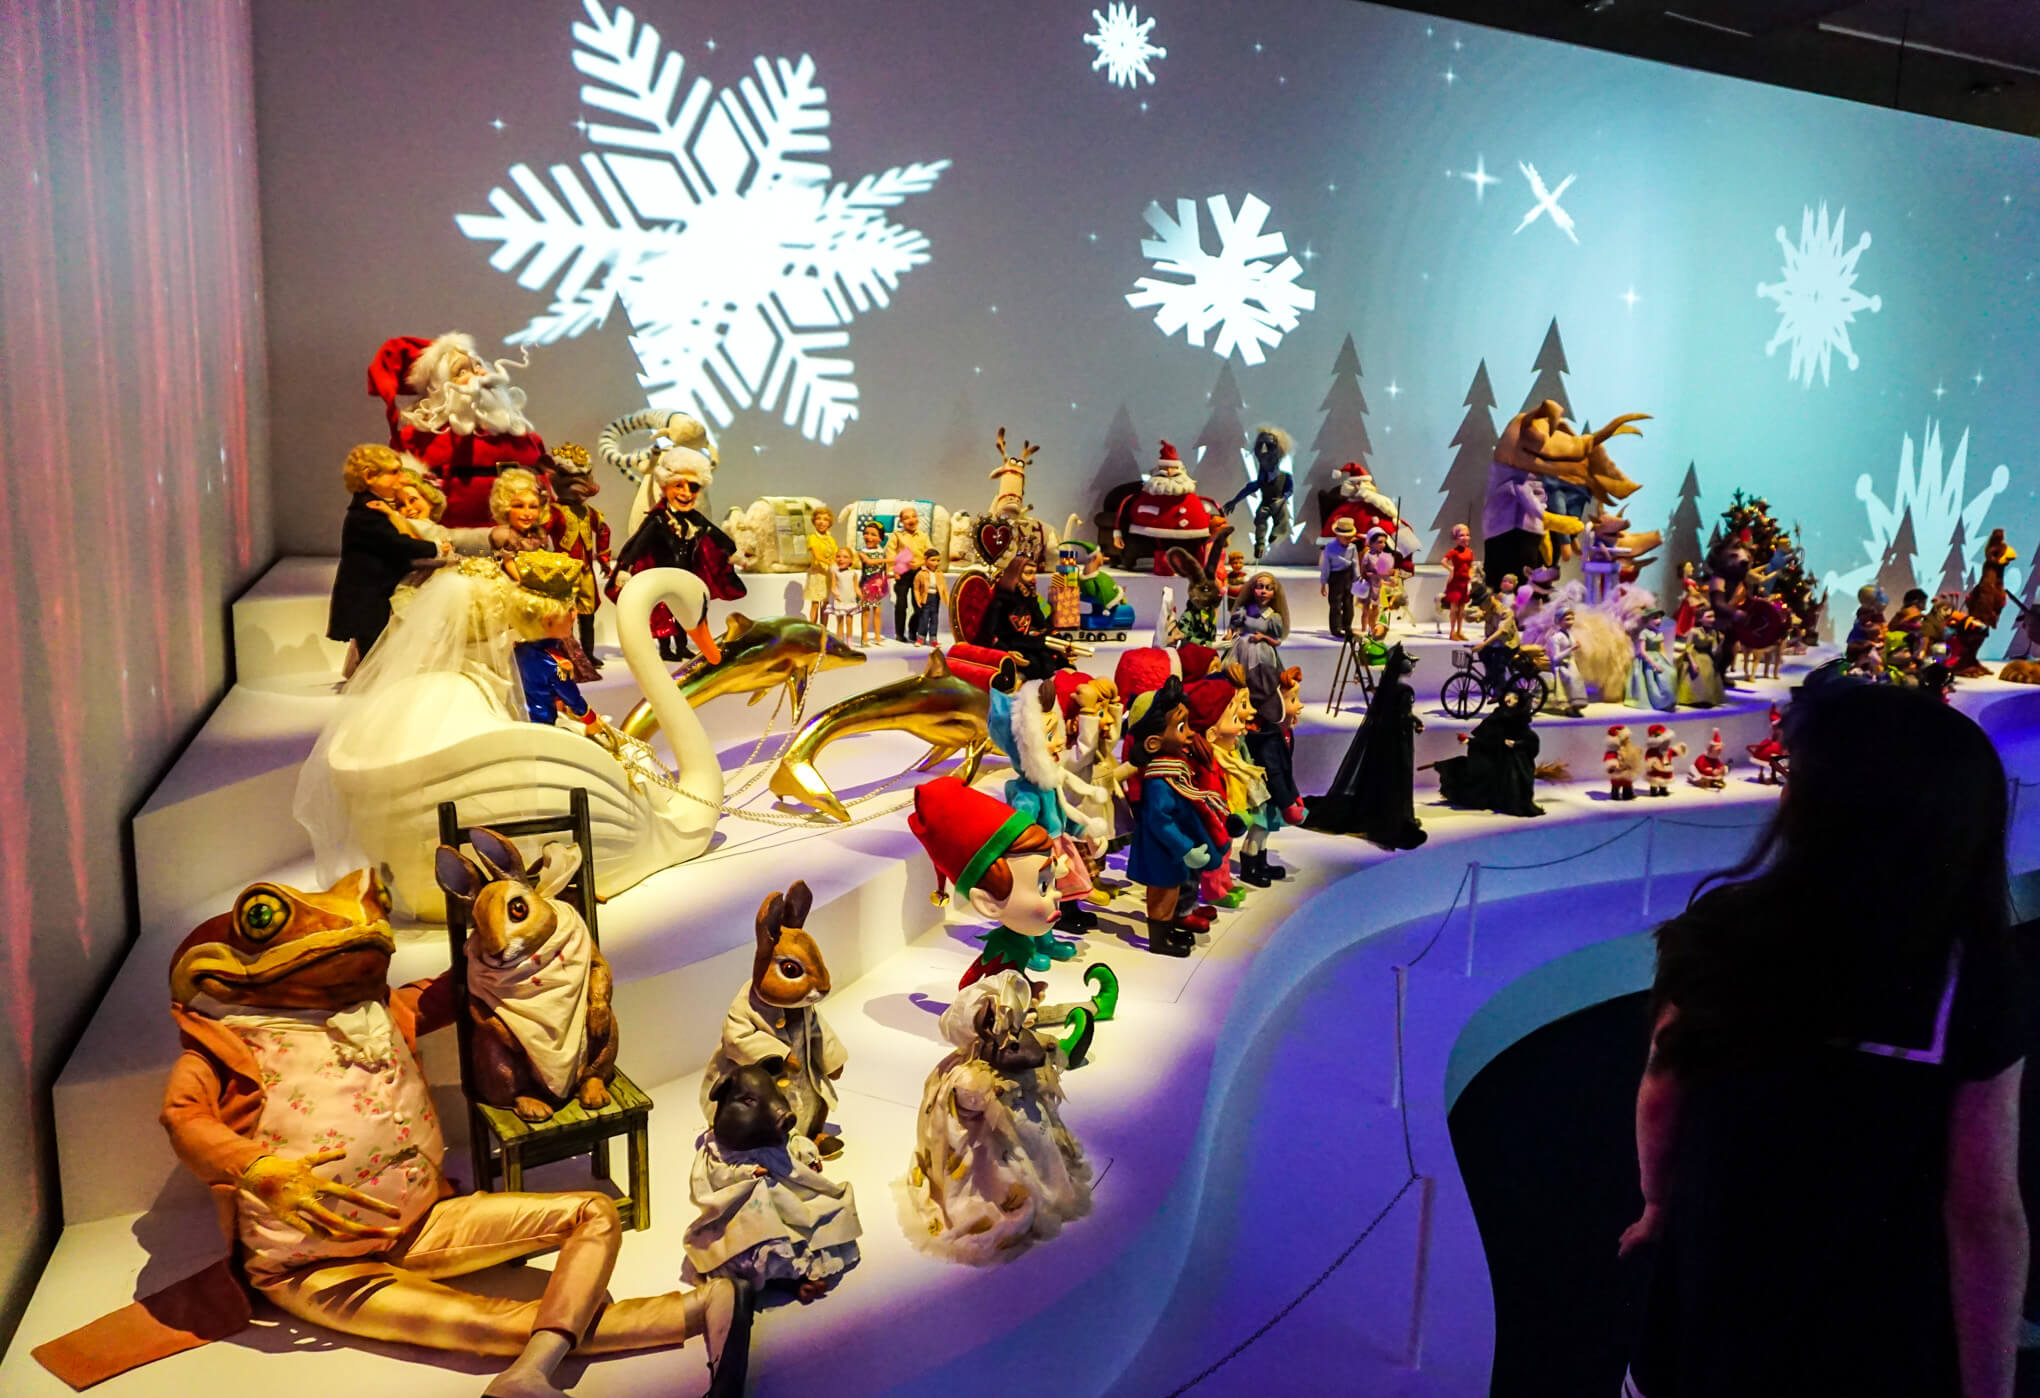 Make-Believe-The-Story-of-the-Myer-Christmas-Windows-Melbourne-Museum-3-8.jpg